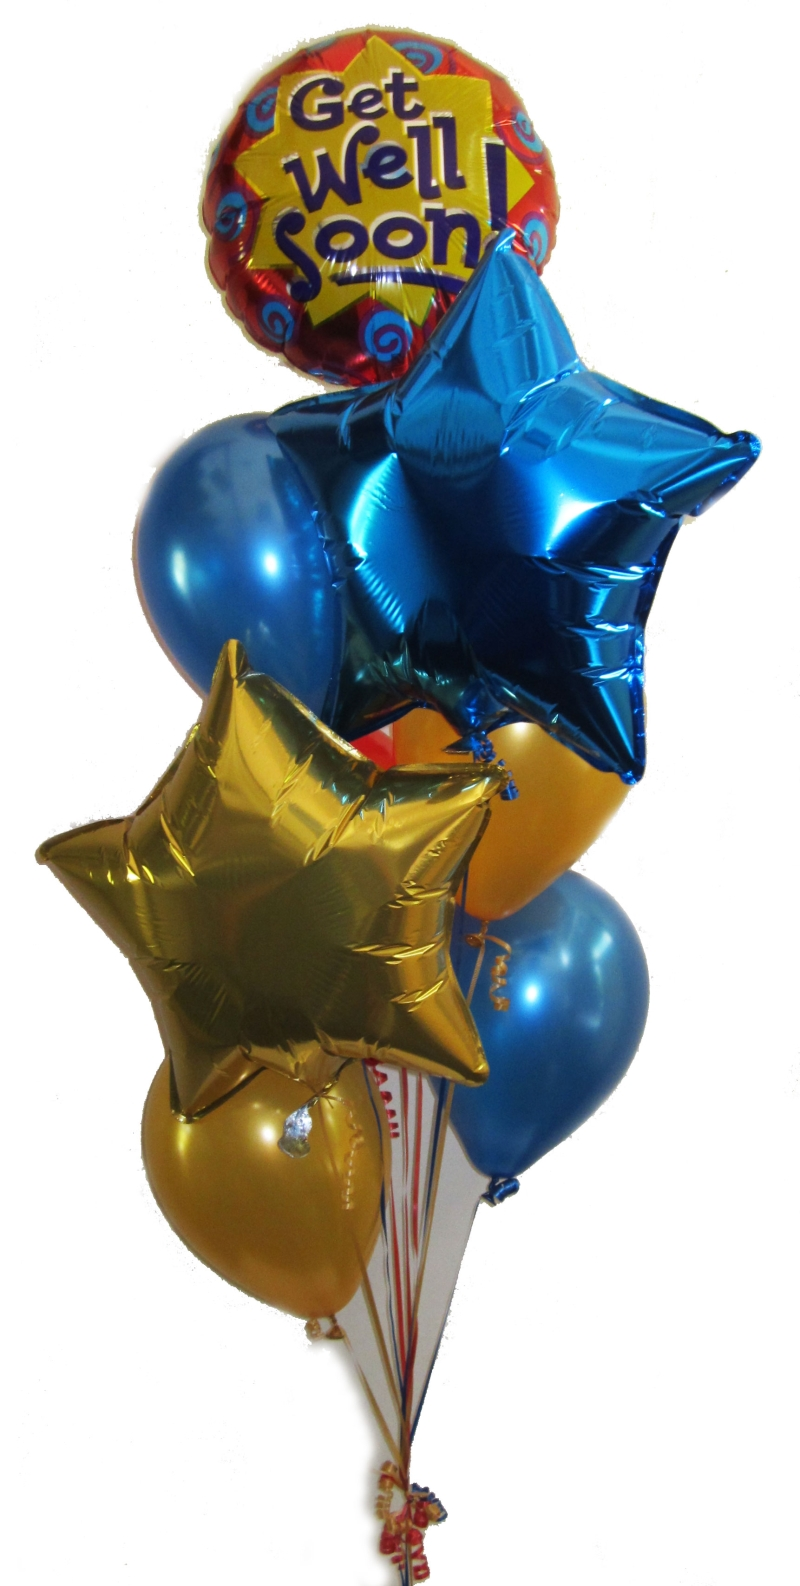 Balloon Bouquets Perth Helium Balloon Bouquets Balloon Gift Delivery Perth